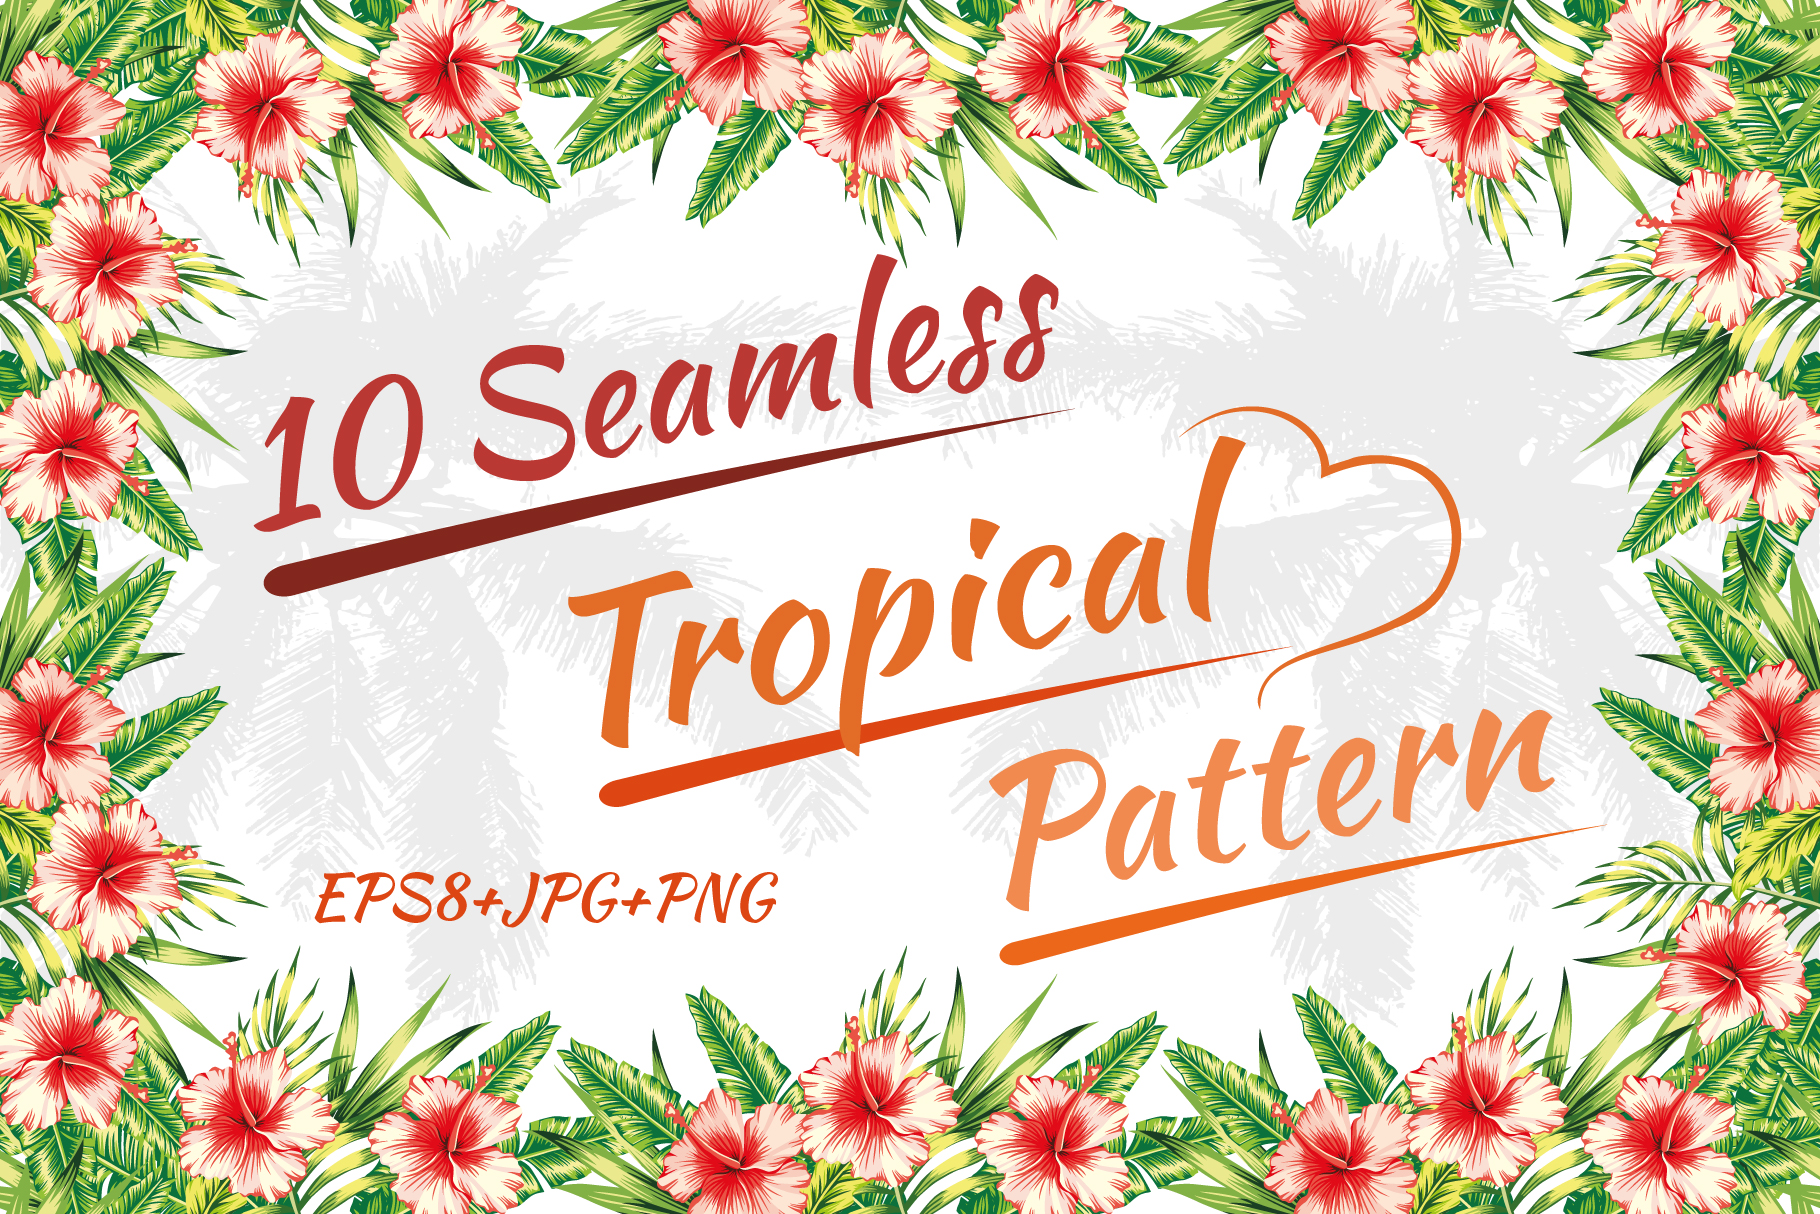 Tropical pattern. Seamless design. example image 1